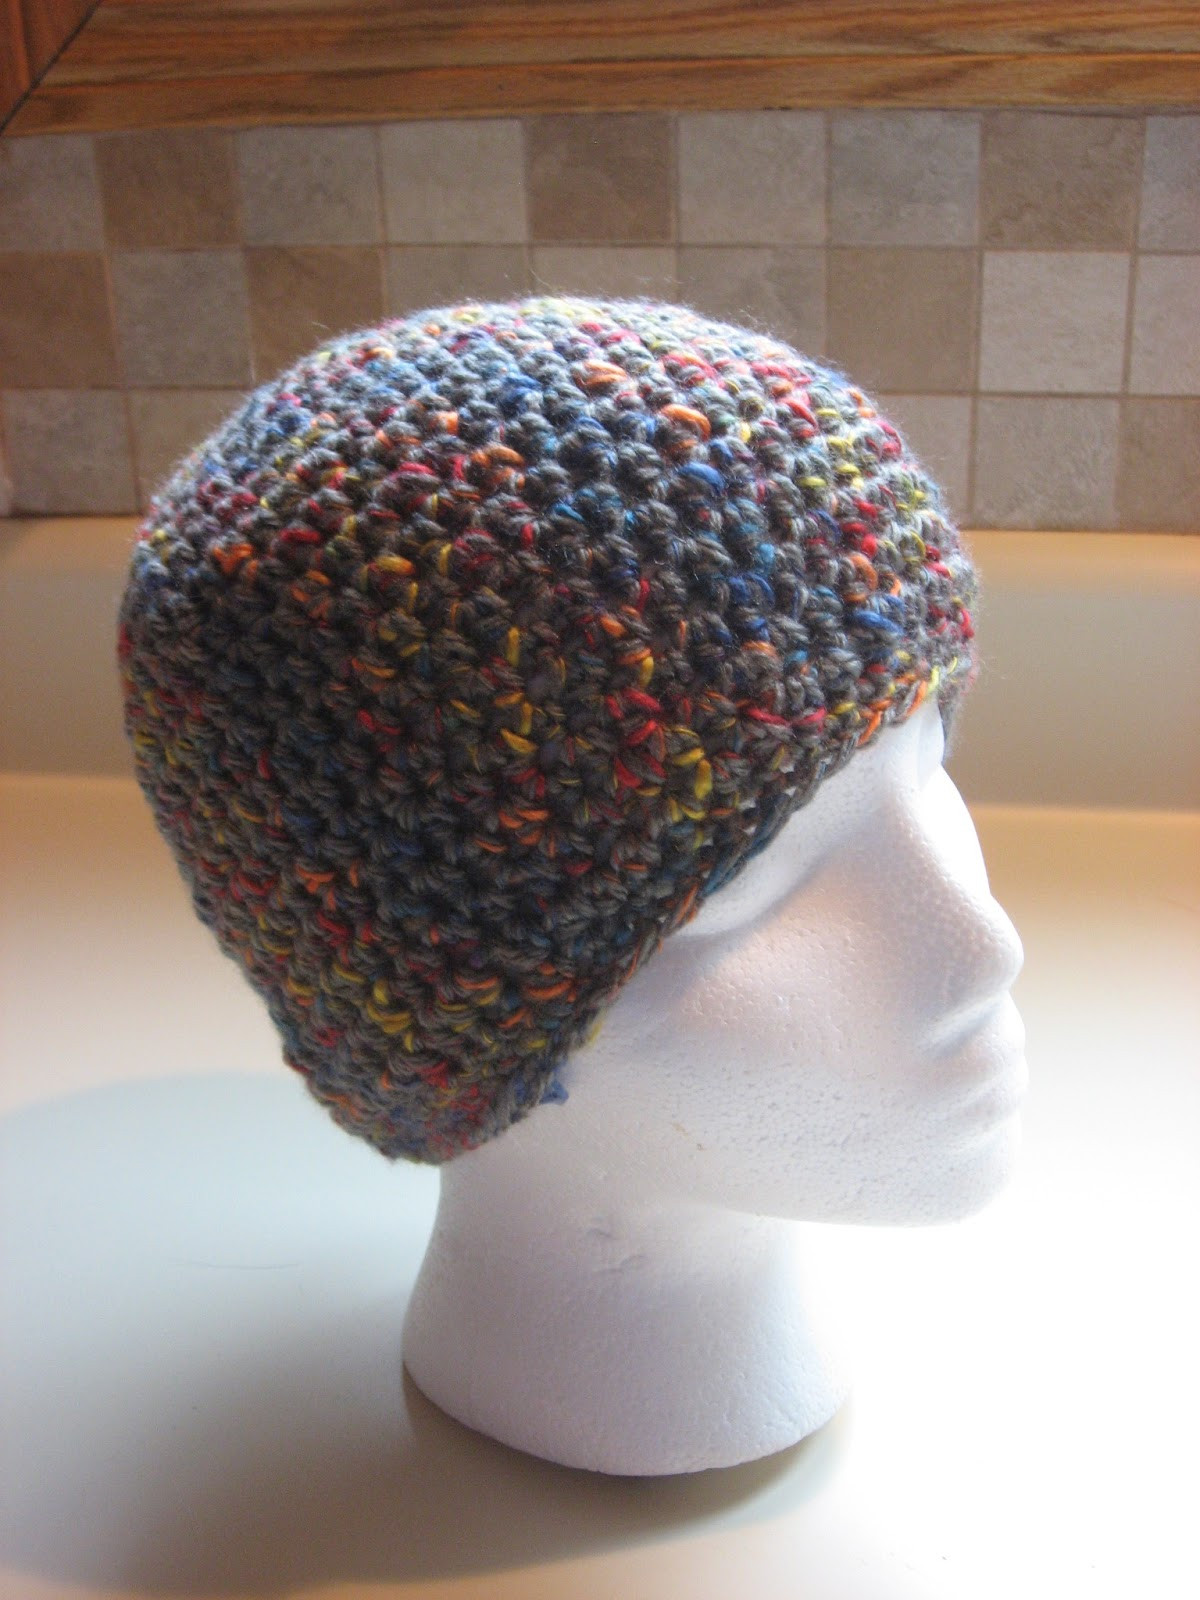 Chemo Cap Crochet Pattern Awesome Crochet Projects More Chemo Hats Of Brilliant 48 Pictures Chemo Cap Crochet Pattern